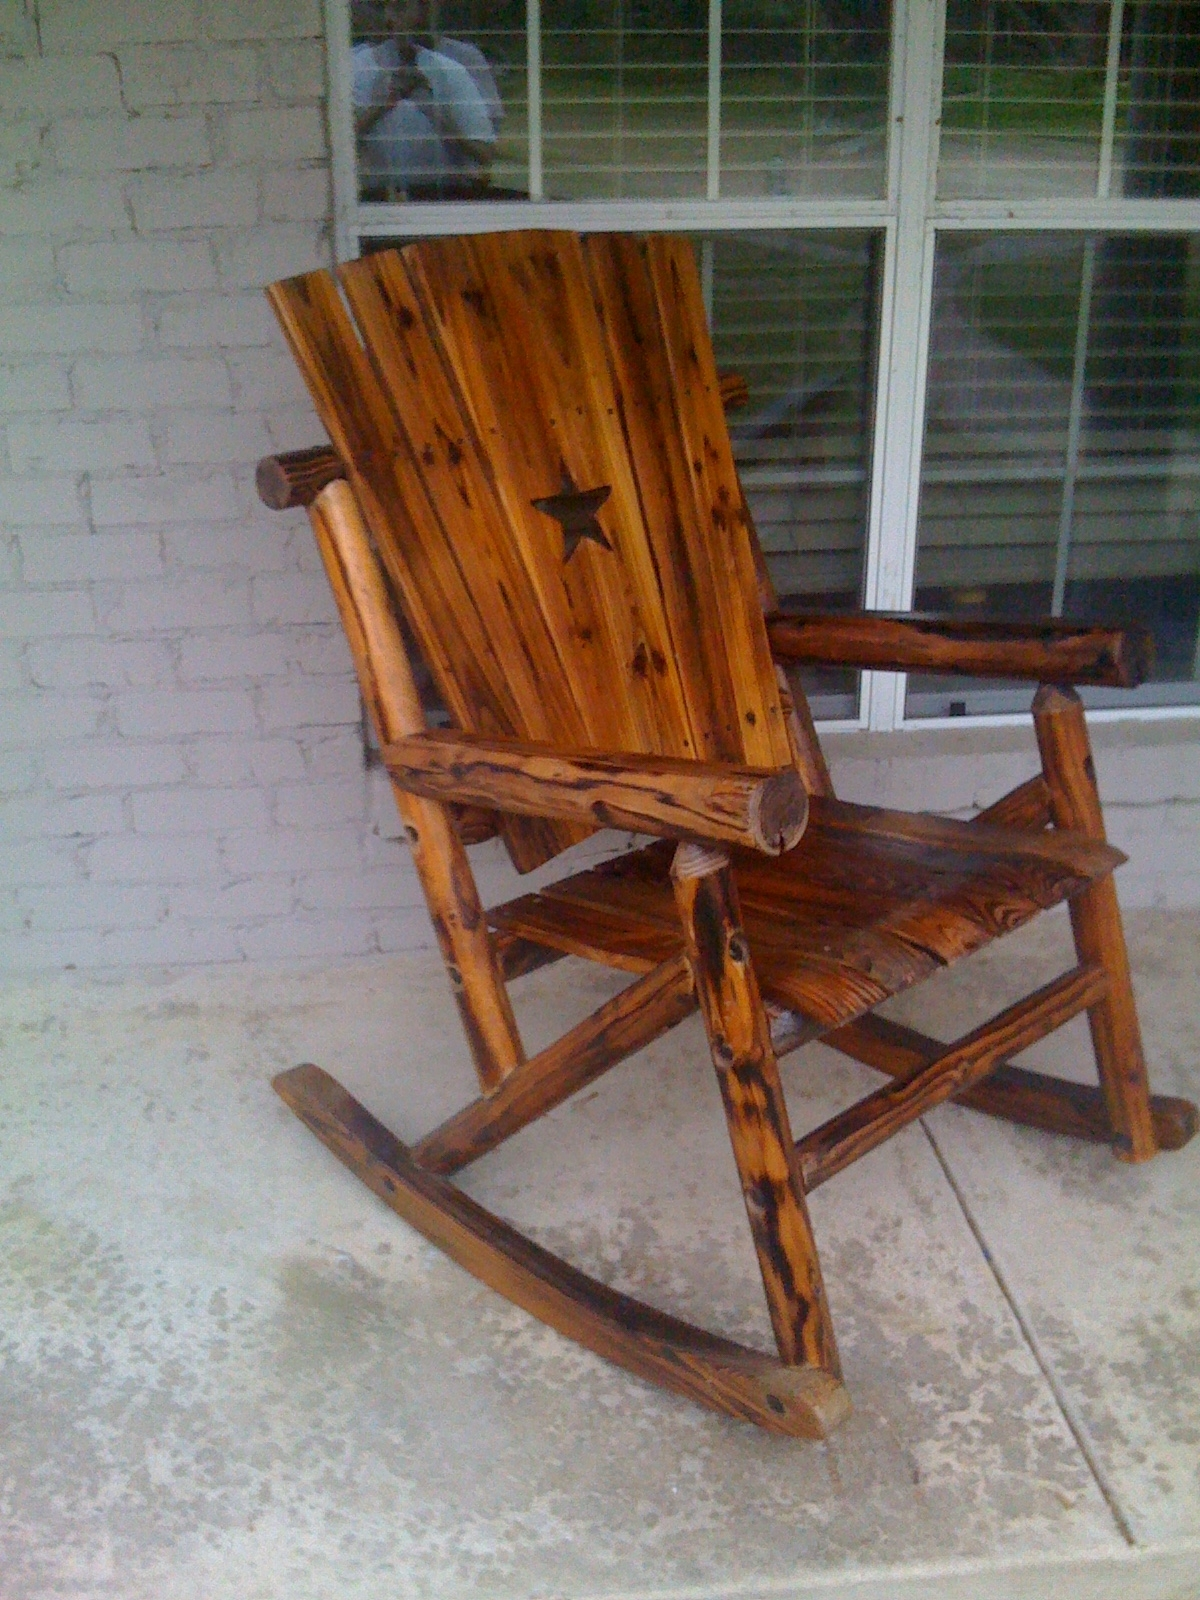 Rocking Chairs For Outdoors Within Most Popular Outdoor Wooden Rocking Chairs Rustic : Pleasure Outdoor Wooden (View 11 of 15)